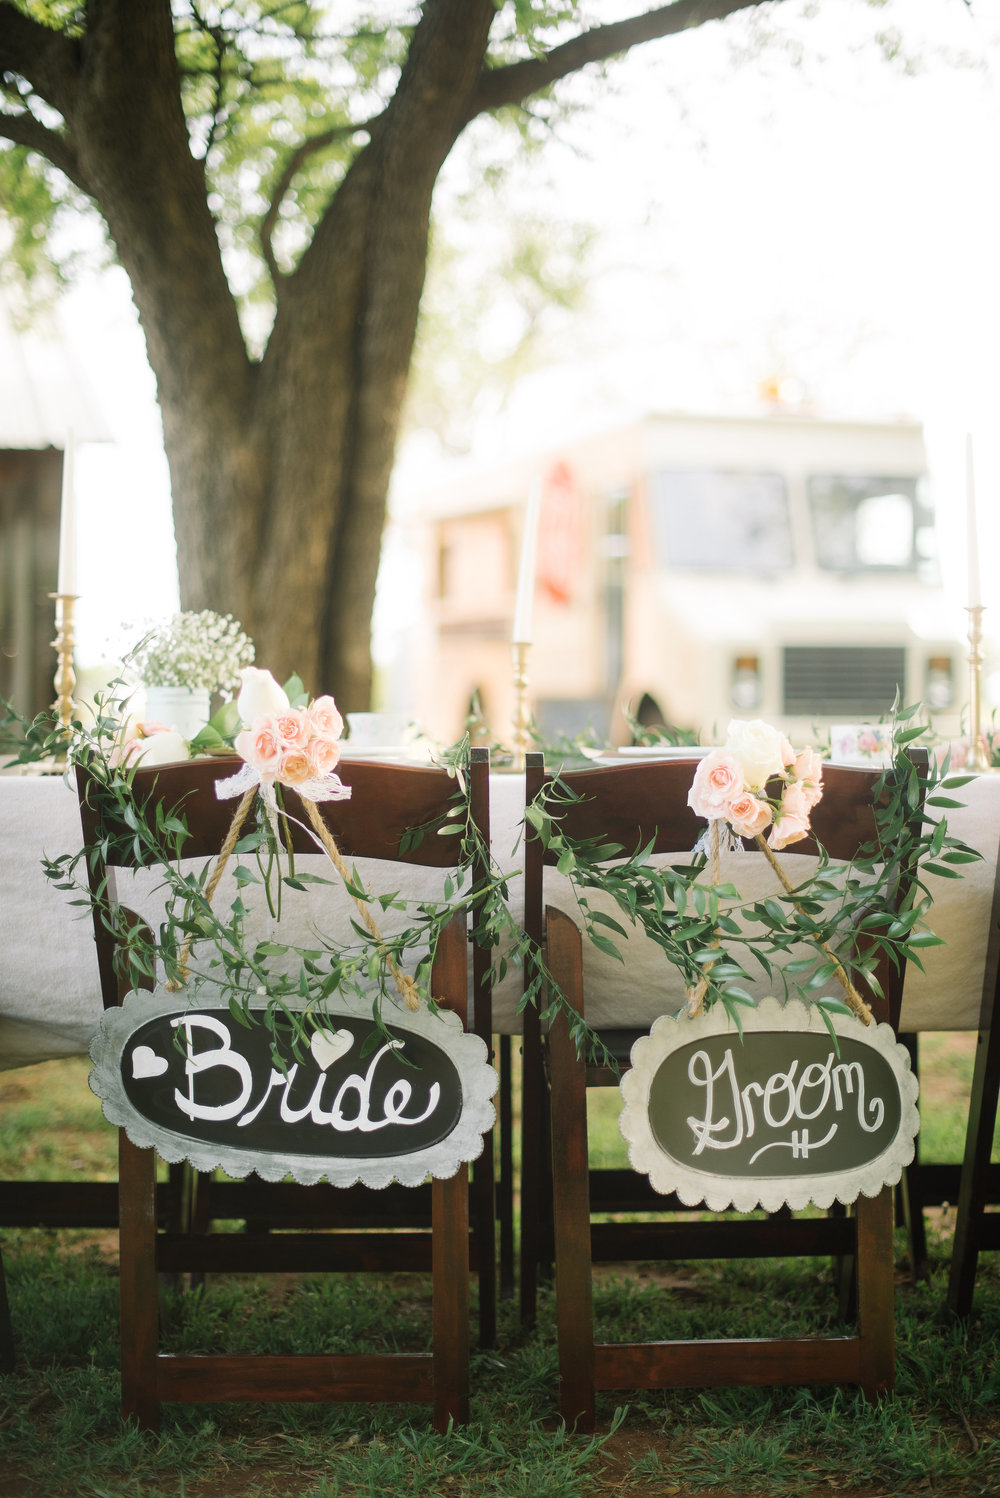 Adorable signs--just so you know where the two most important guests are sitting!